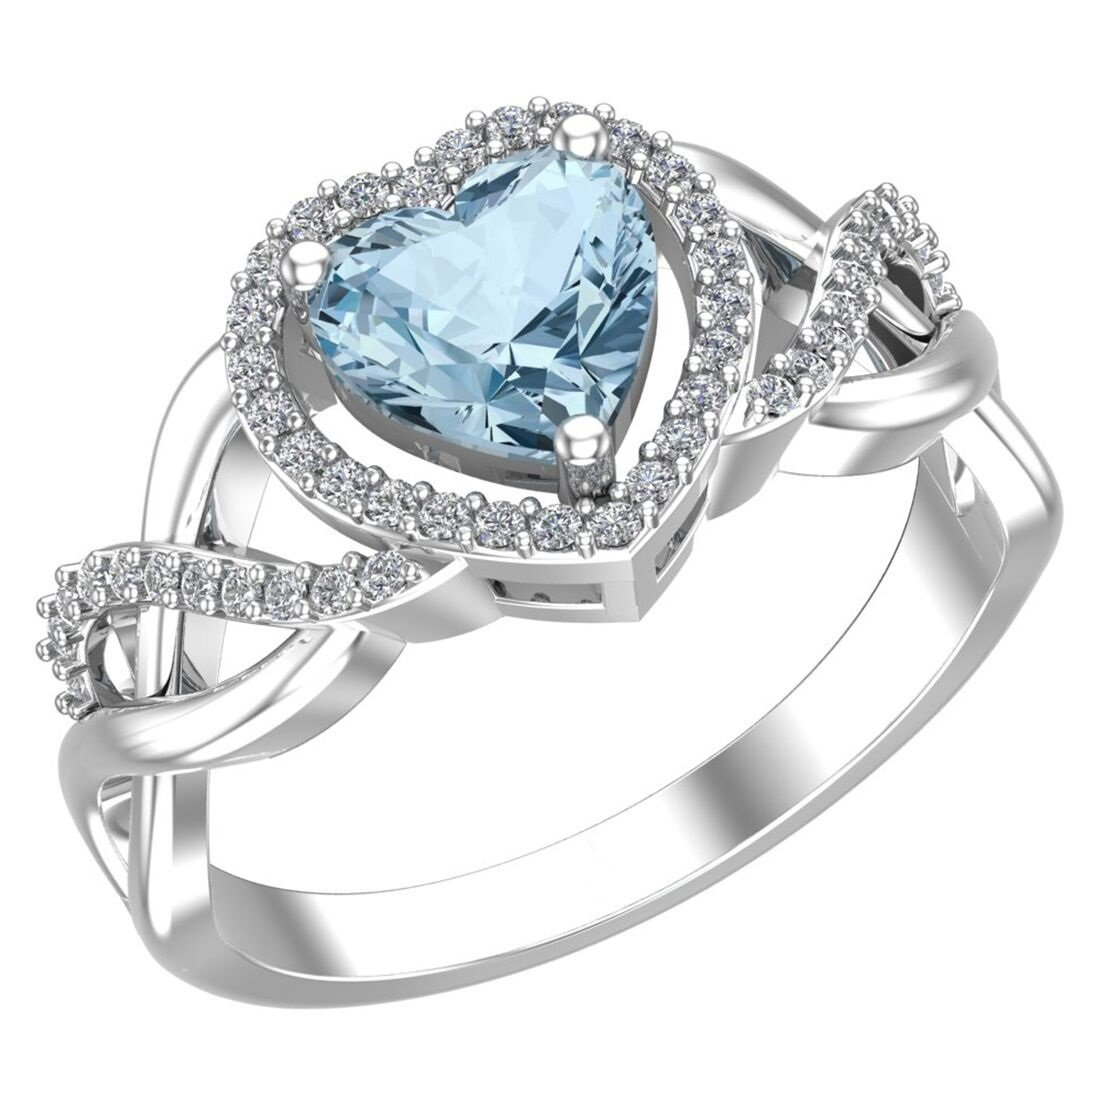 Other Fine Rings Careful Infinity Celtic Blue Topaz Heart Engagement Wedding Silver Ring Set